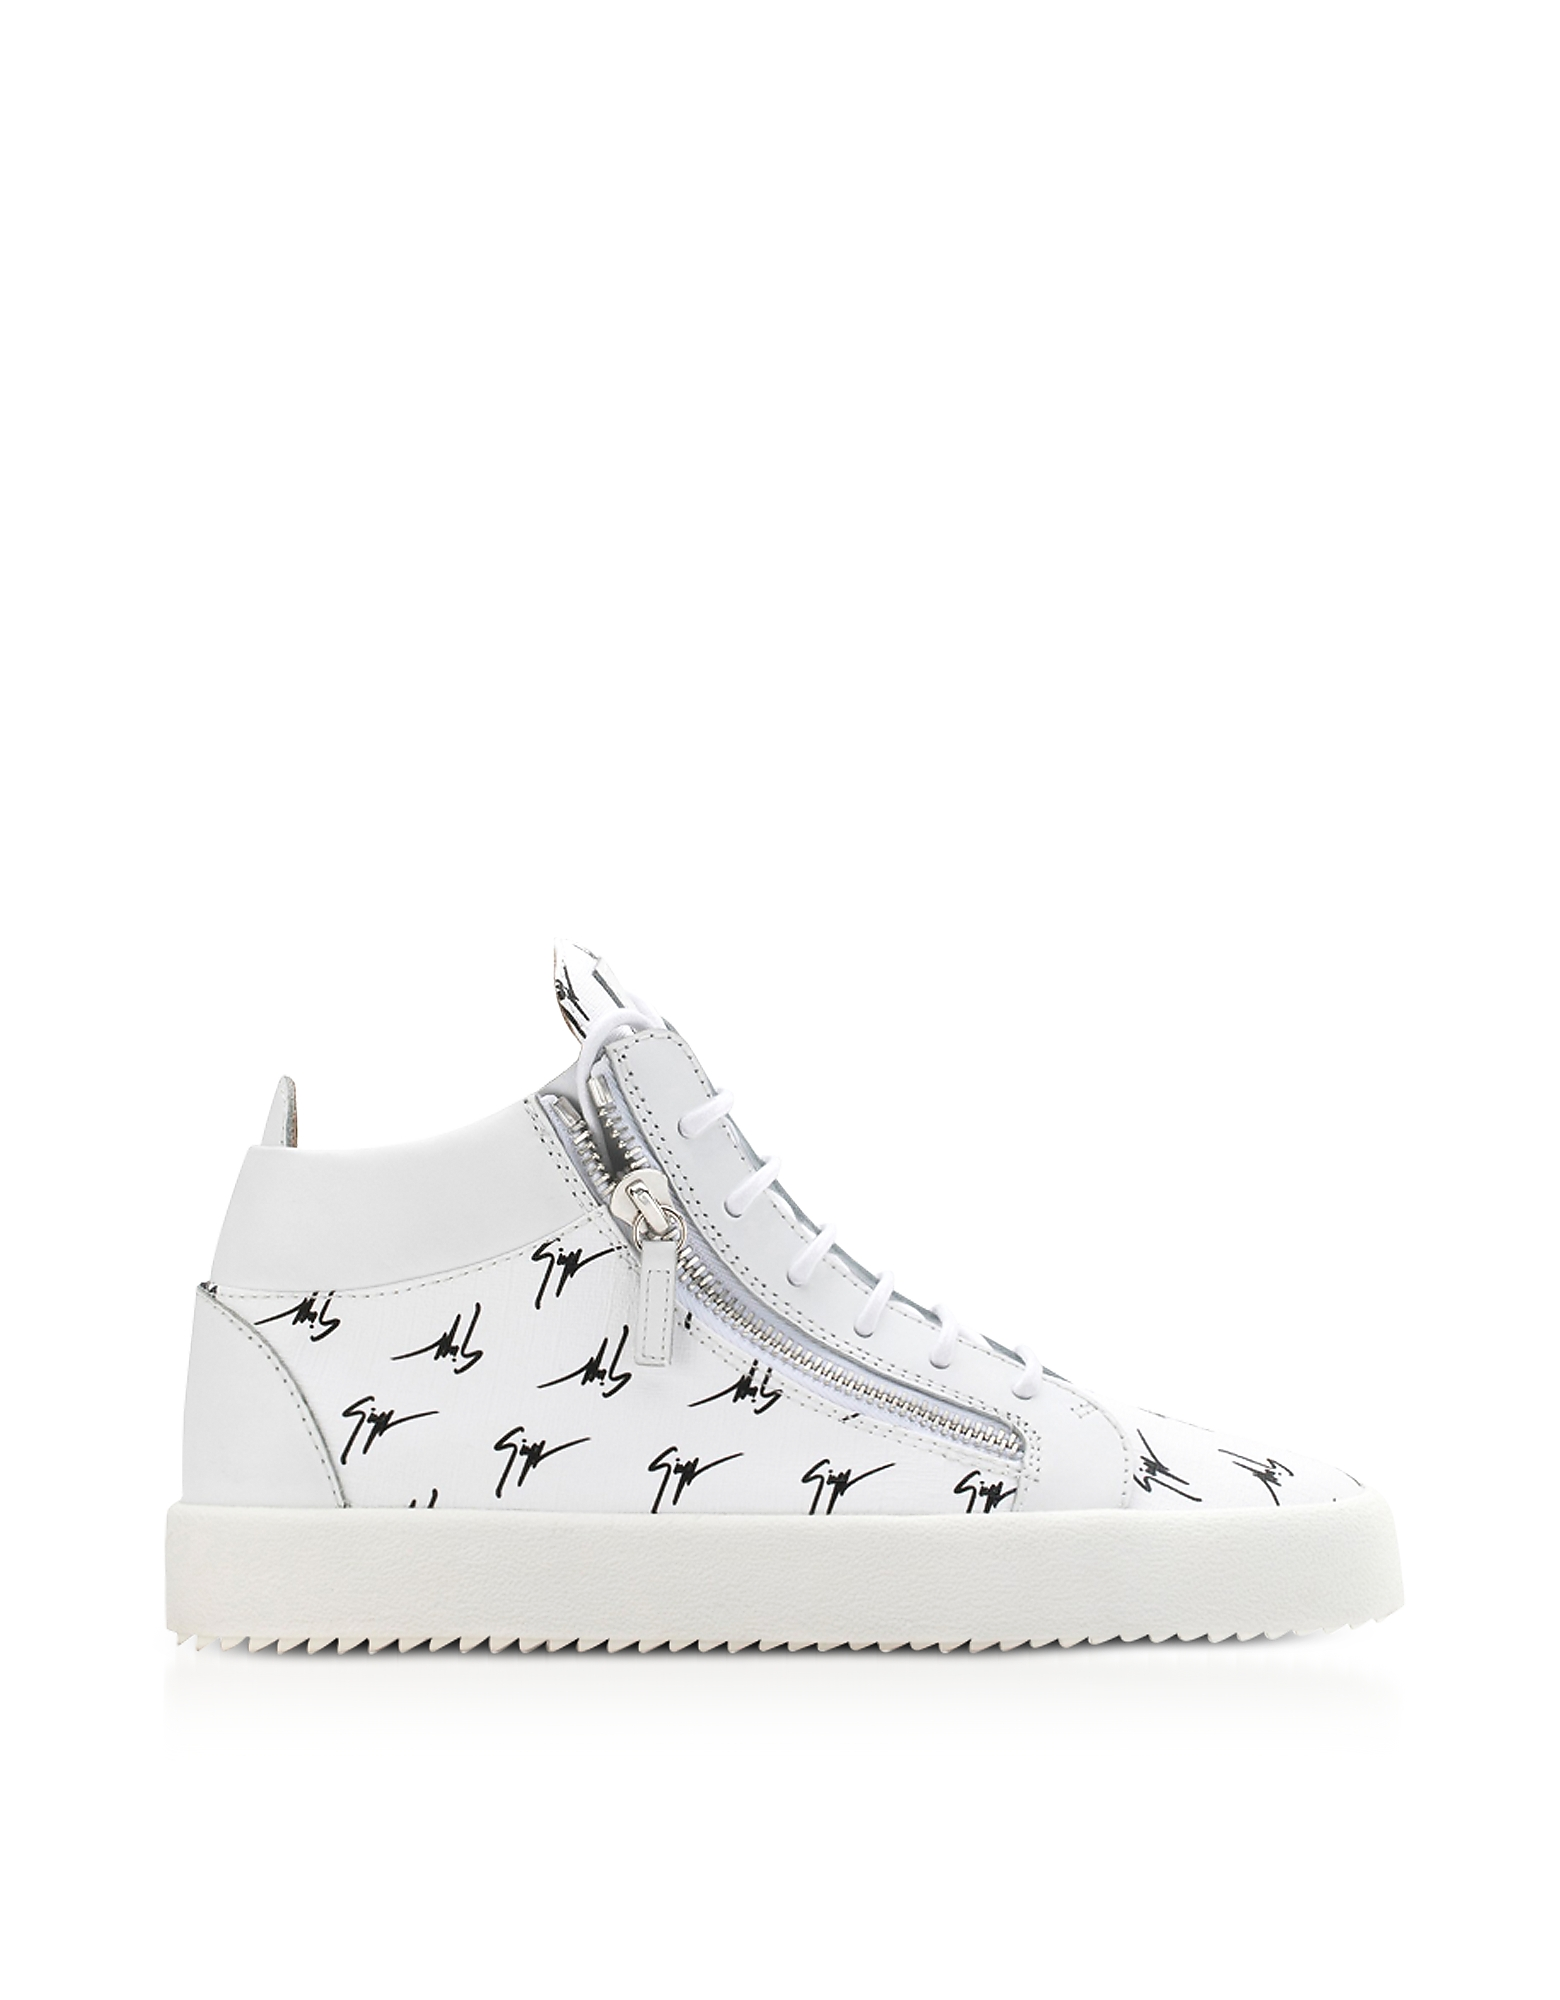 Giuseppe Zanotti Shoes, White Leather Mid-Top The Signature Men's Sneakers